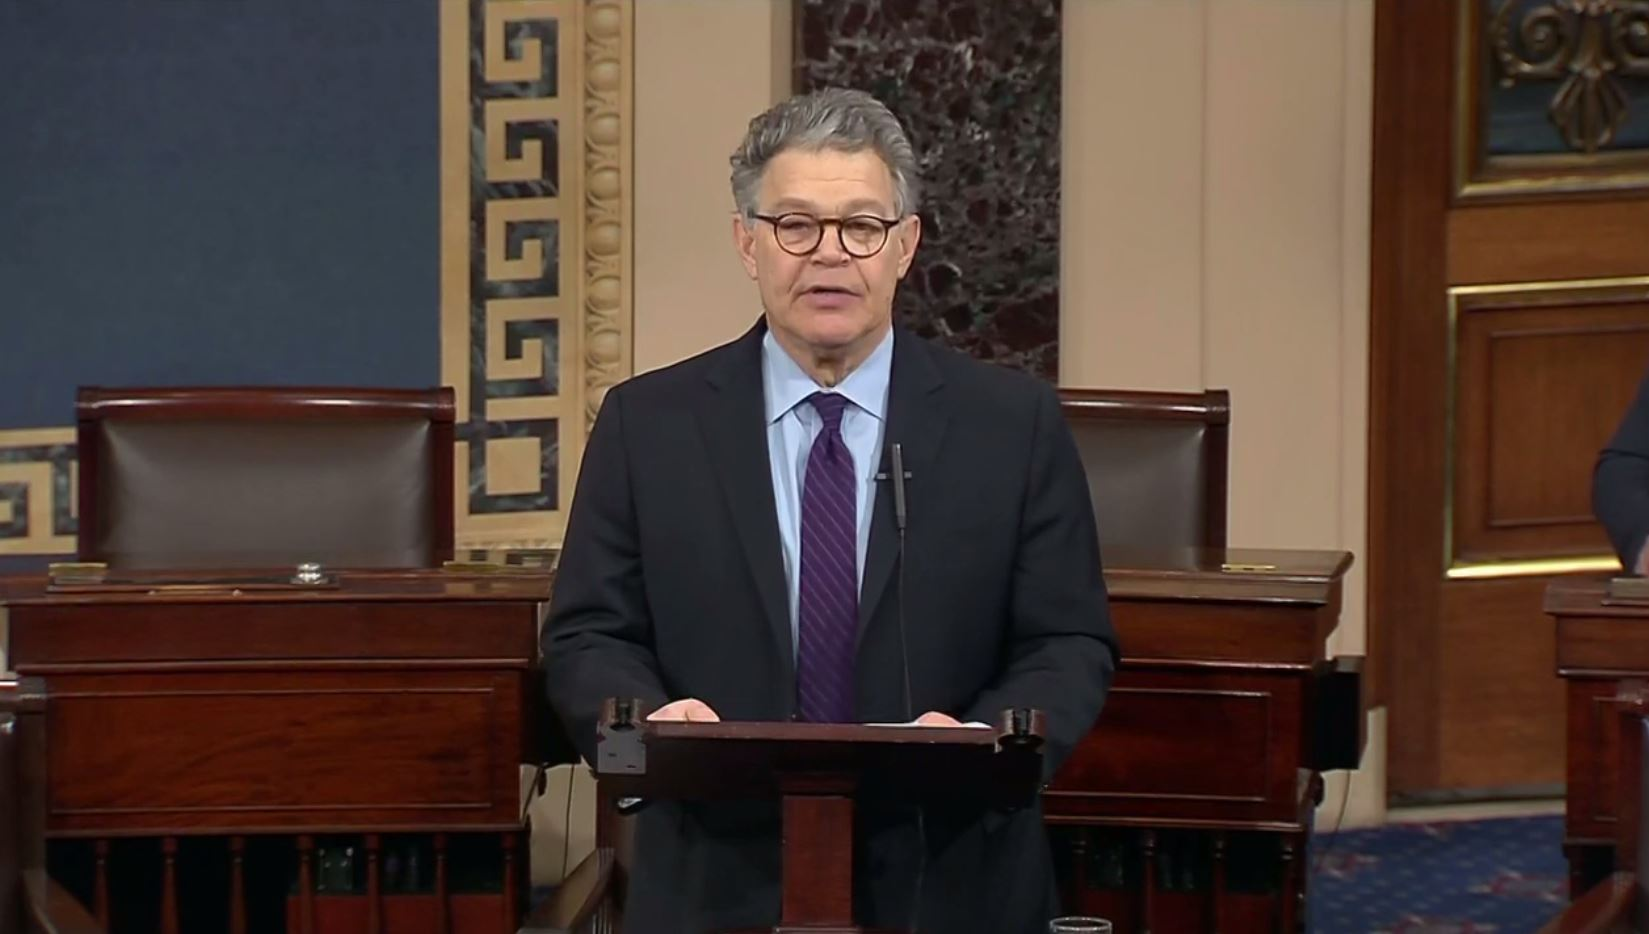 Franken says he is resigning_1512666170336-159532.JPG59047656